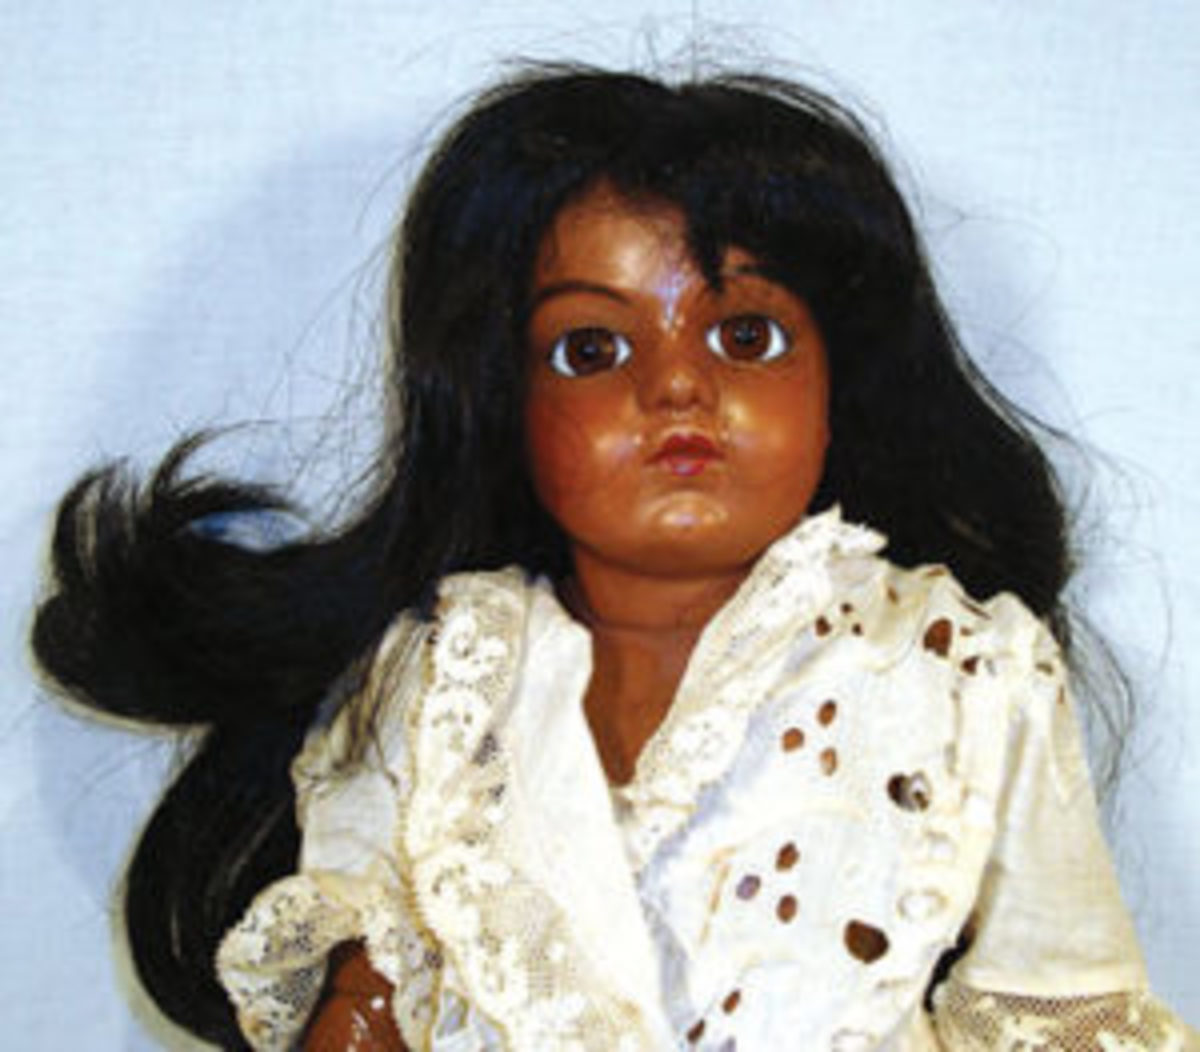 Black Bru Jne R; author's collection, featured onauthor's American Doll and Toy Museum Blog.